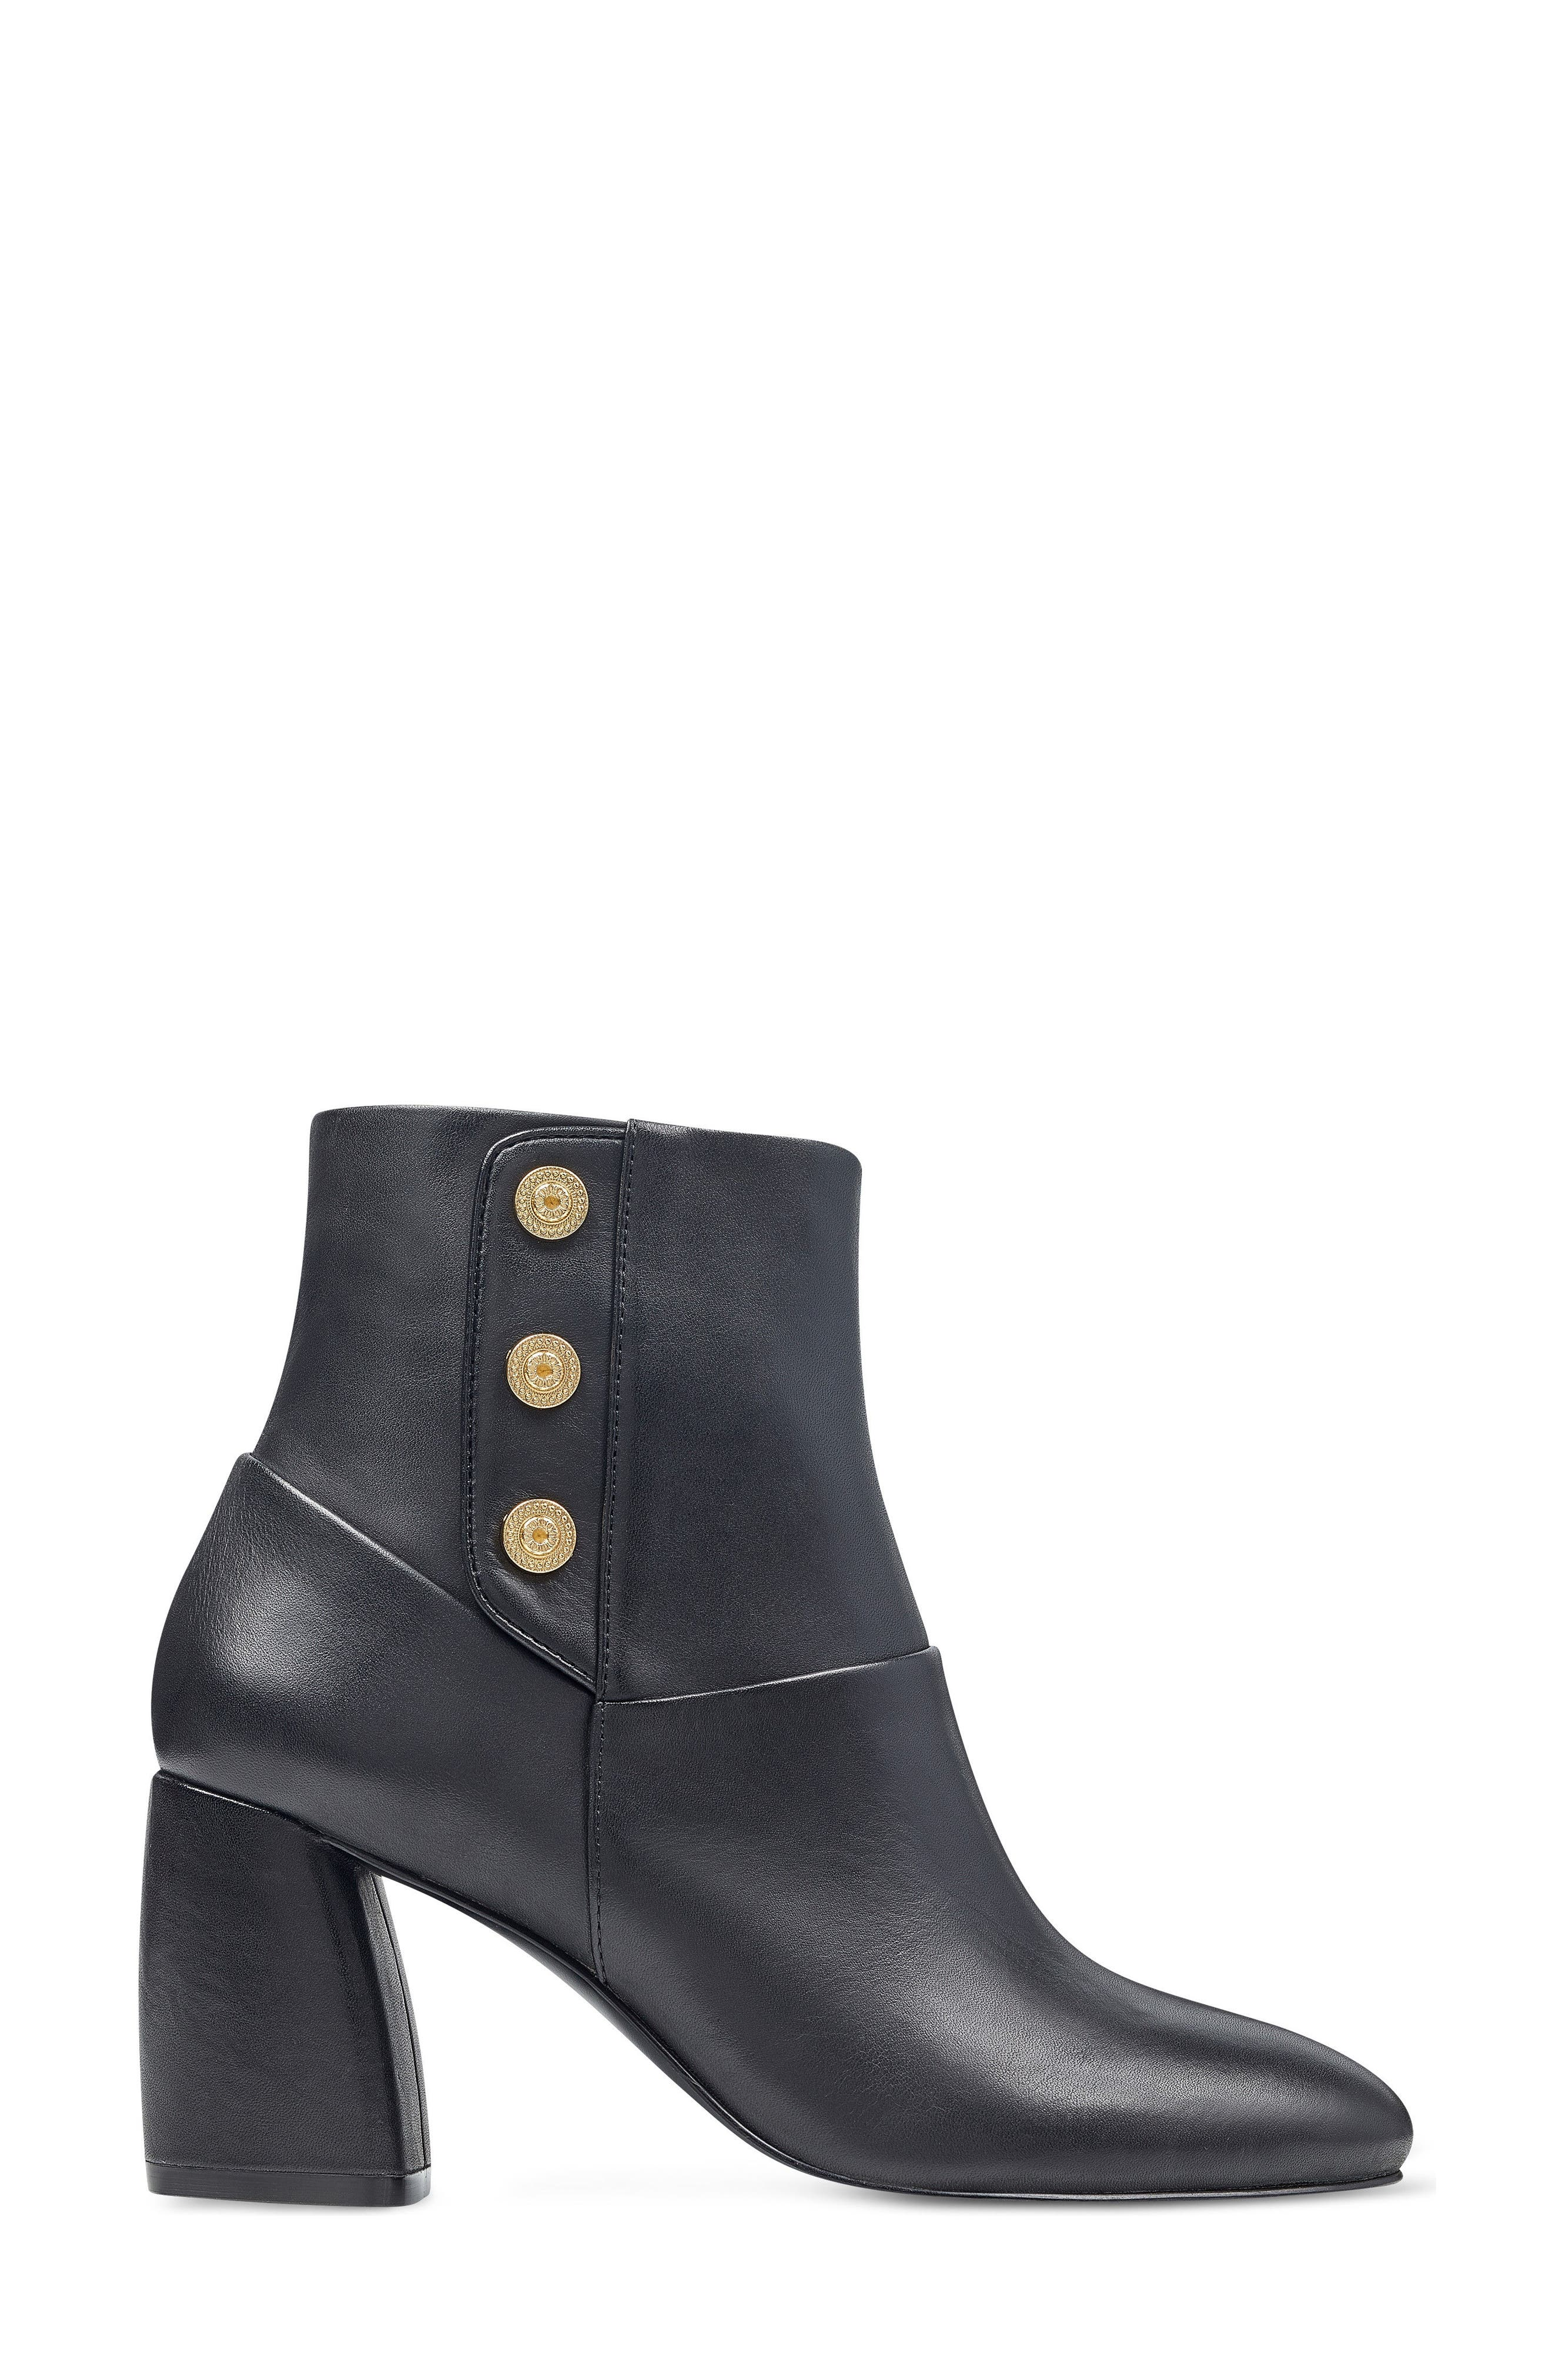 Kirtley Bootie,                             Alternate thumbnail 3, color,                             001